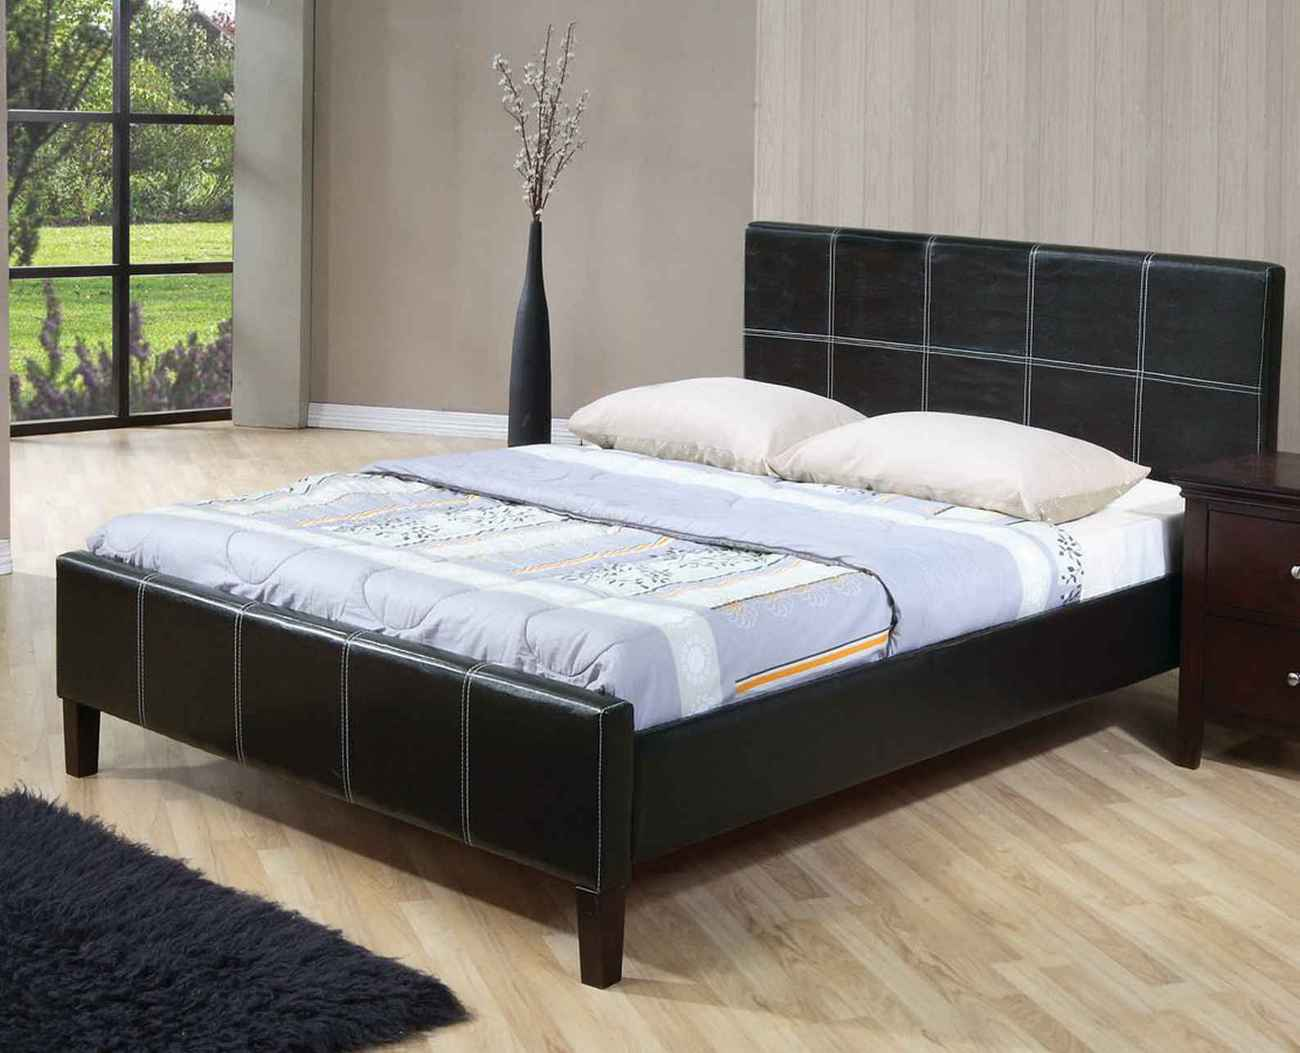 Cheap queen size beds and mattresses for The cheapest bed